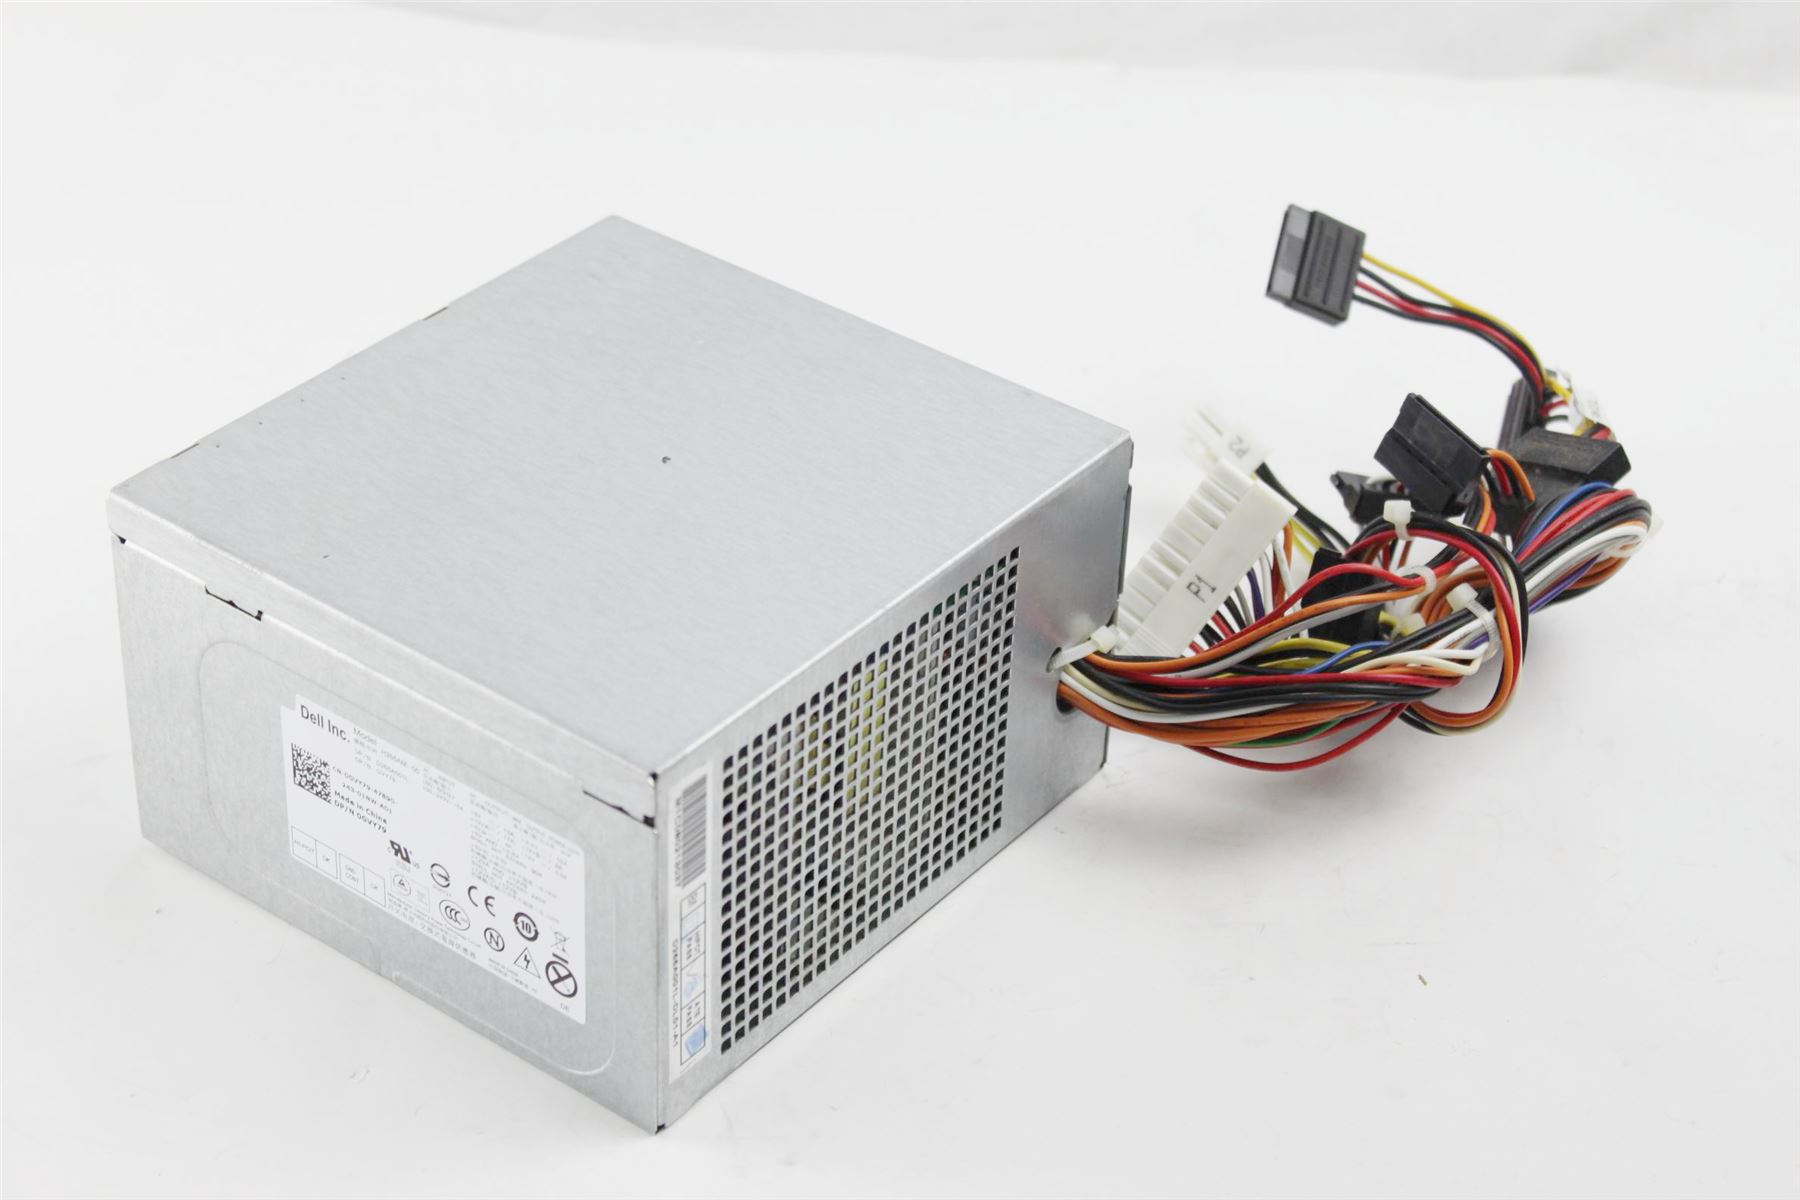 Details about Genuine Dell Optiplex 390 790 990 H265AM-00 265W Power Supply  GVY79 0GVY79